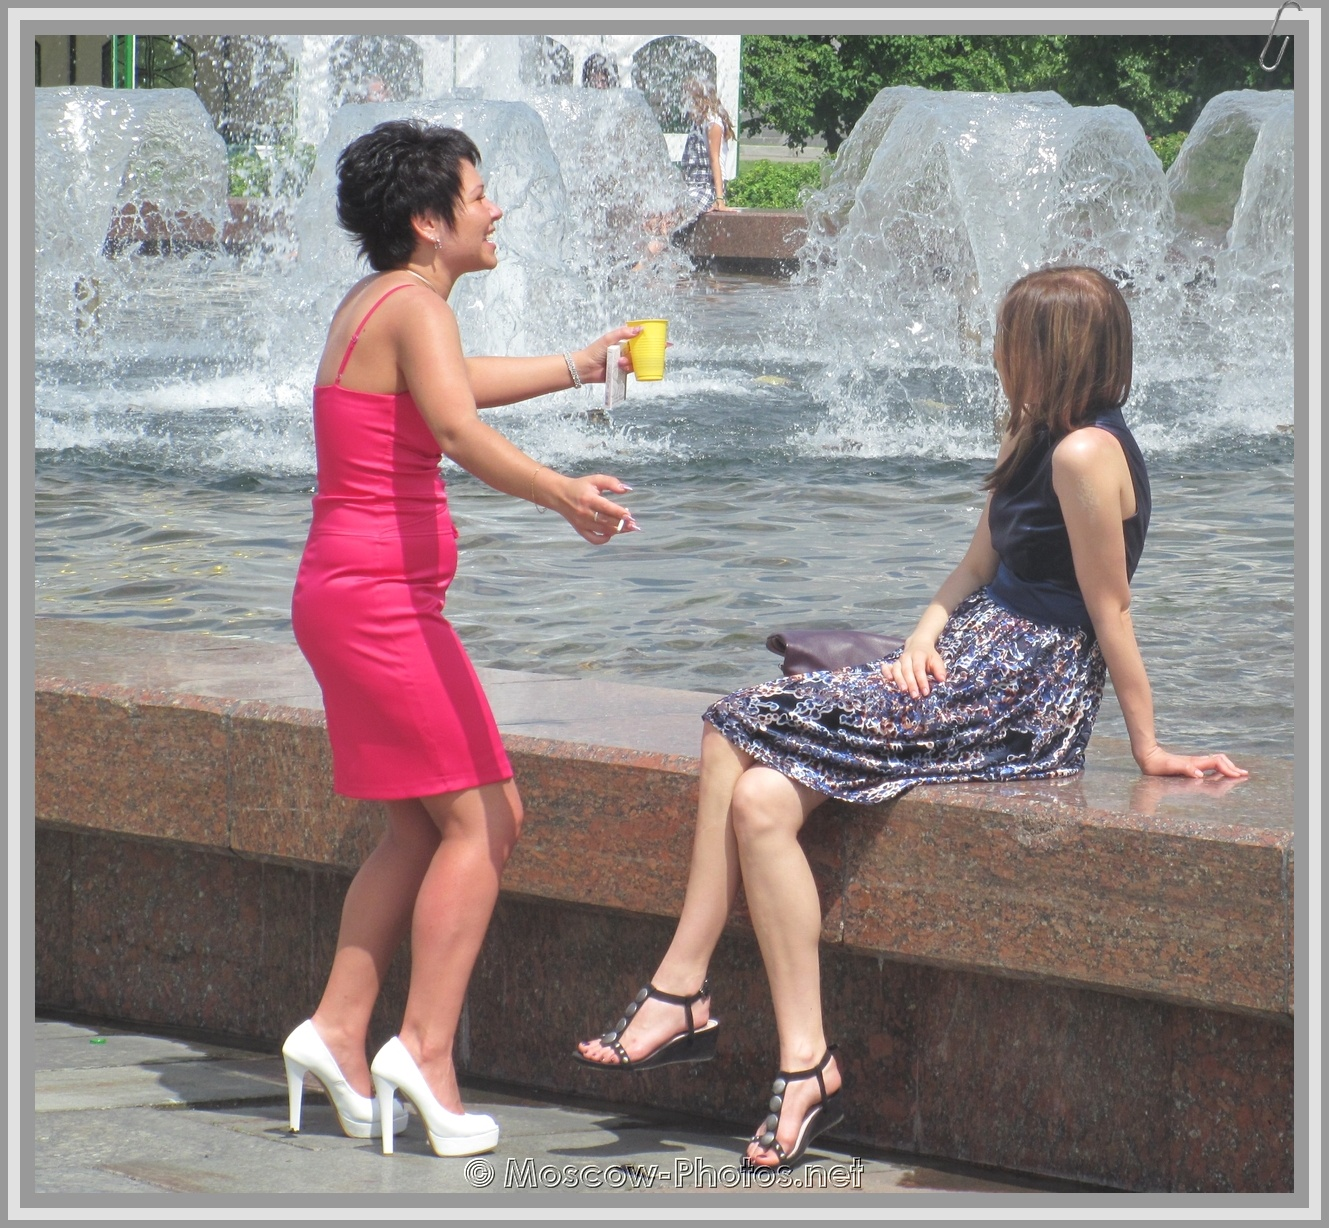 Fountains and Hot Moscow Summer